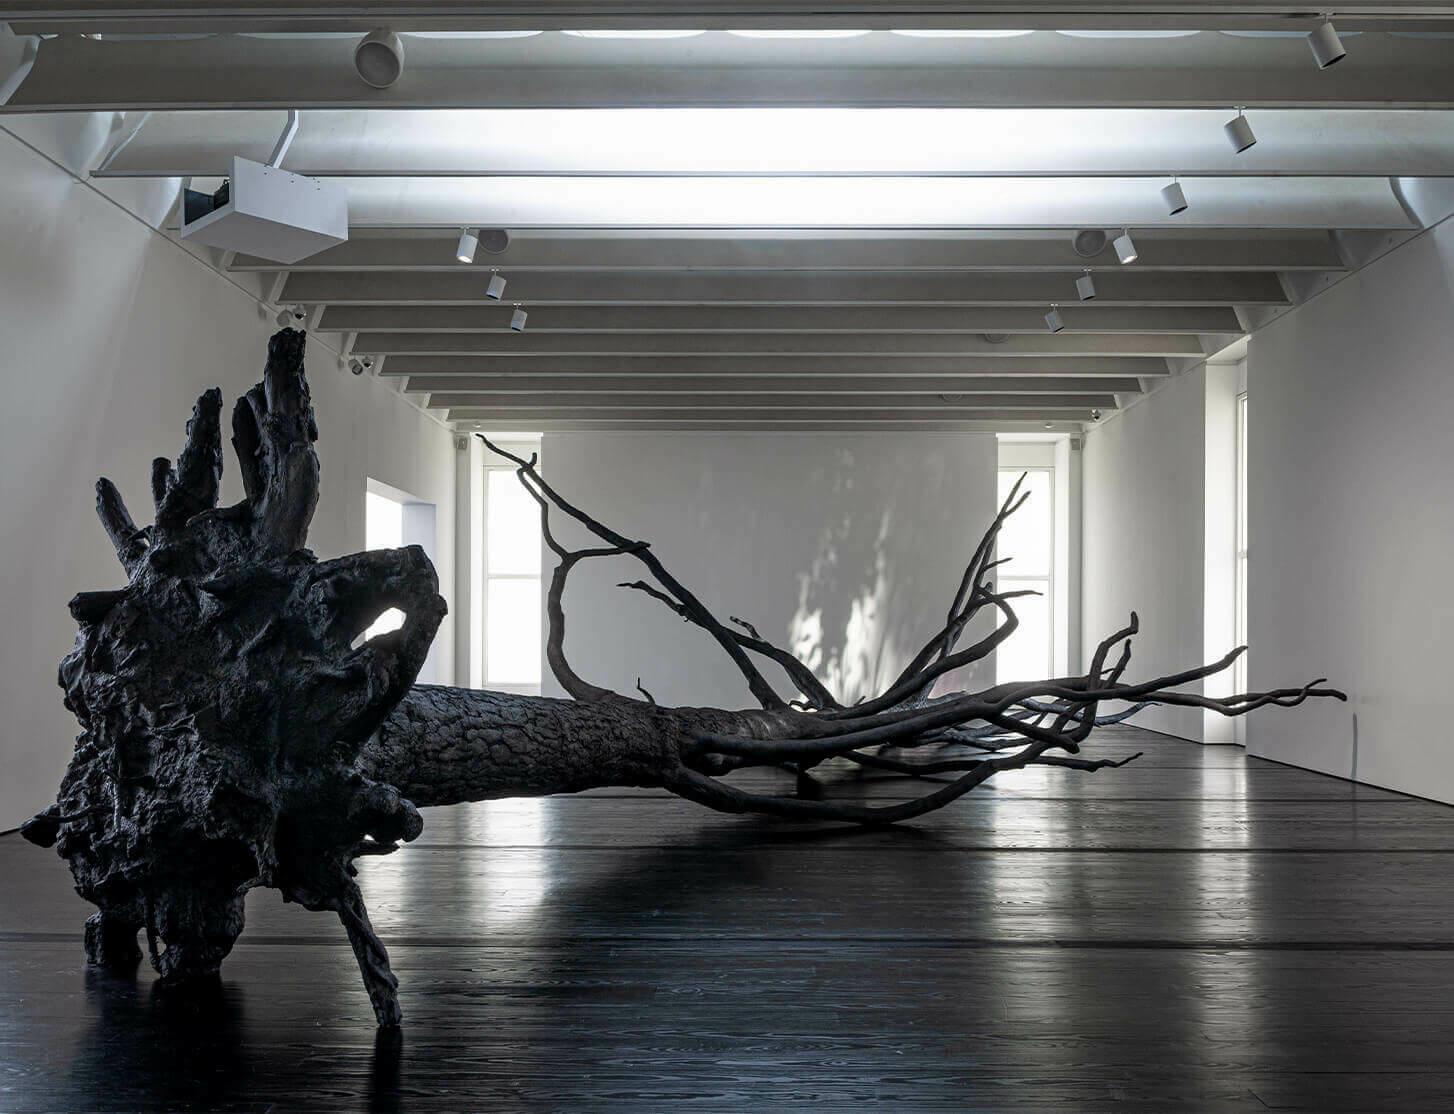 Time, Energy and Bat Guano: A New Exhibit of Overlooked Connections – Allora & Calzadilla in WSJ